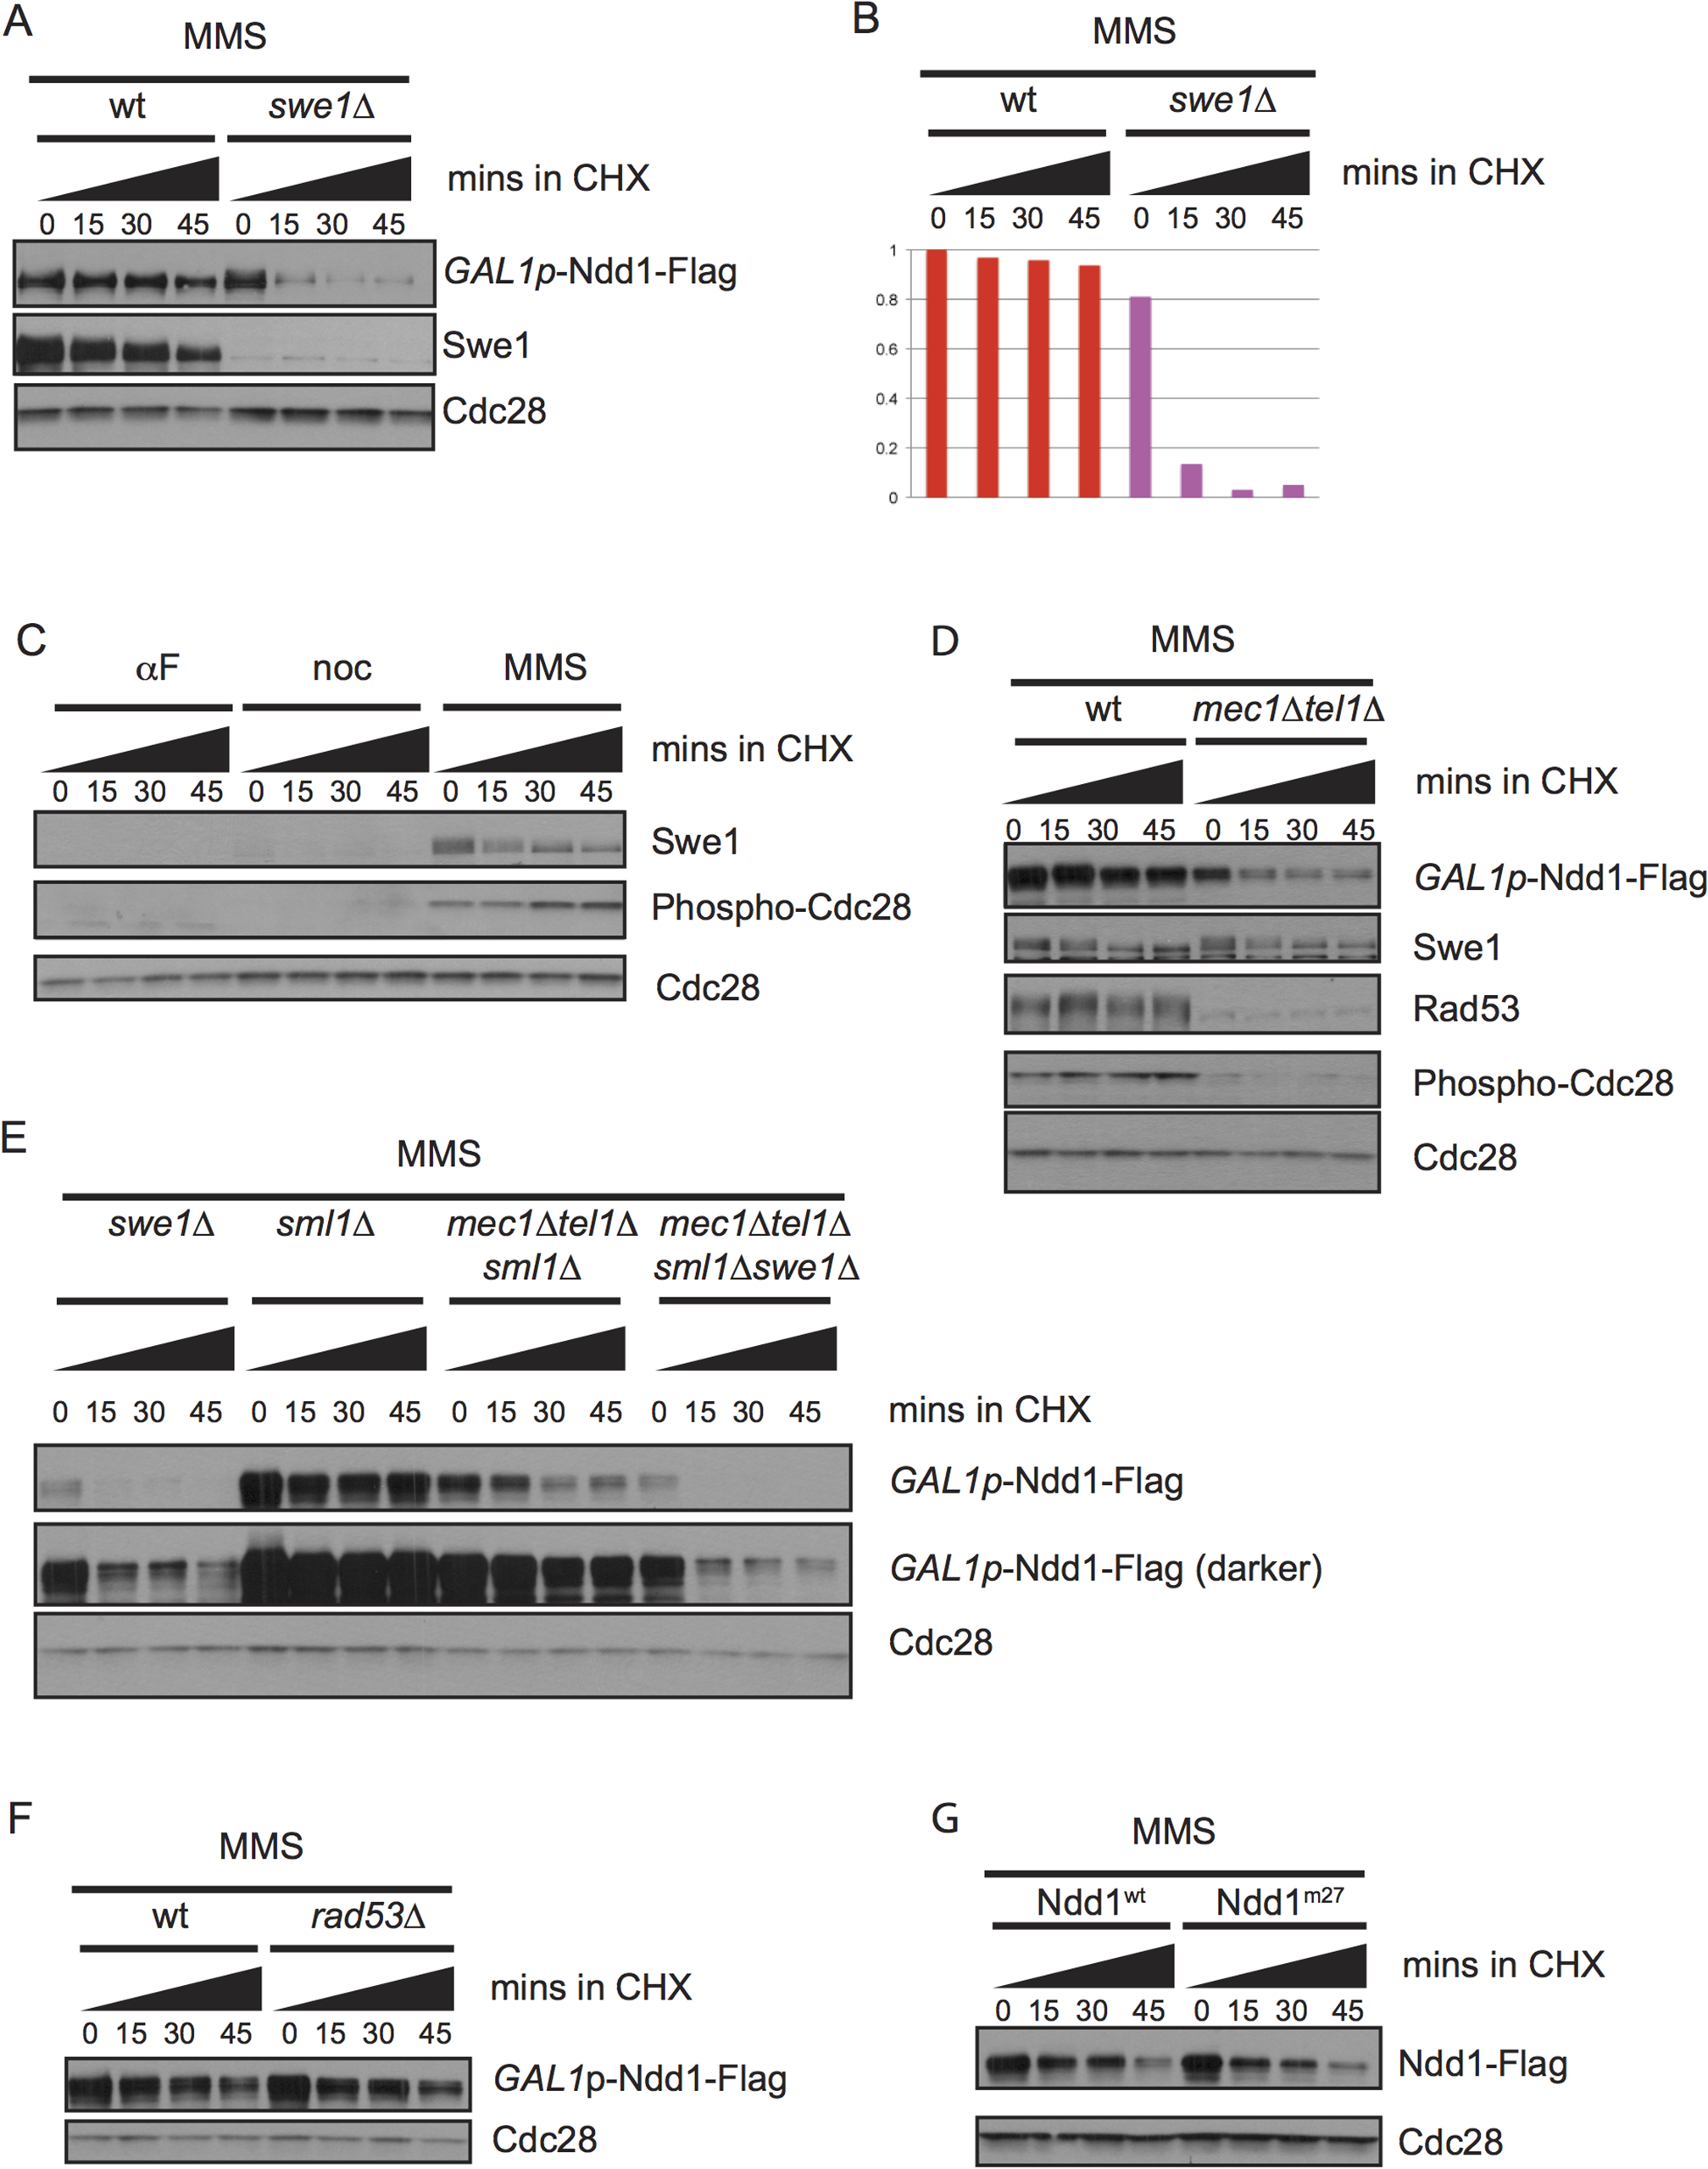 Ndd1 stabilization in response to DNA damage requires Swe1 and Mec1/Tel1.